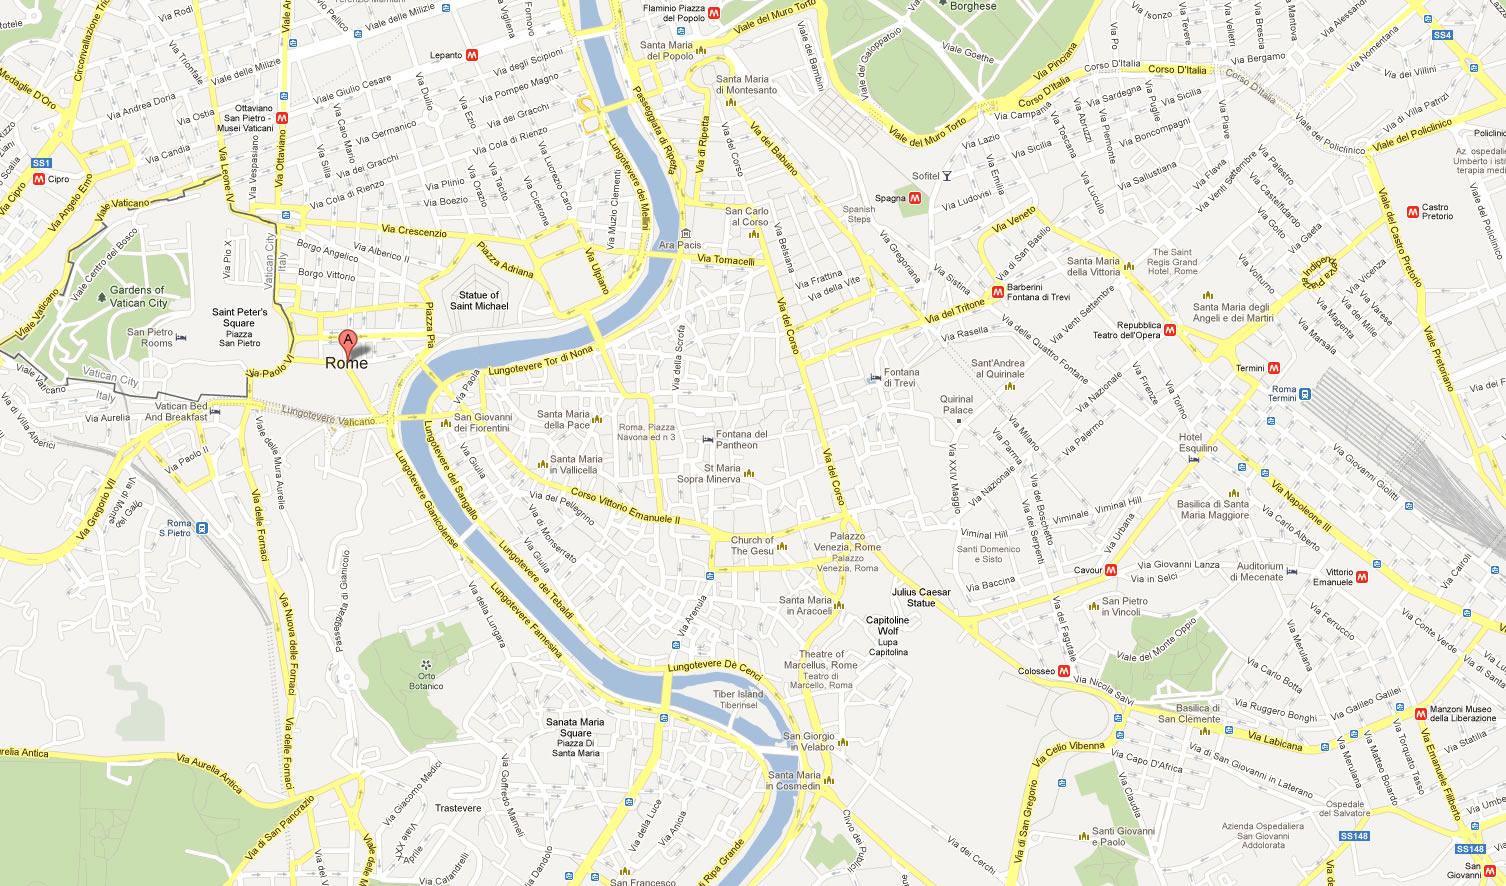 Rome Google Map – MadManBlog on physical map of france, zoomable map of france, large map of france, media of france, detailed map france, book of france, aerial map of france, map of arrondissements paris france, street view of france, map of futuroscope in france, satellite map of france, tumblr map of france, printable map of france, google earth of france, online map of france, google france map with cities, flag of france, print of france, map of europe in france, google map france regions,